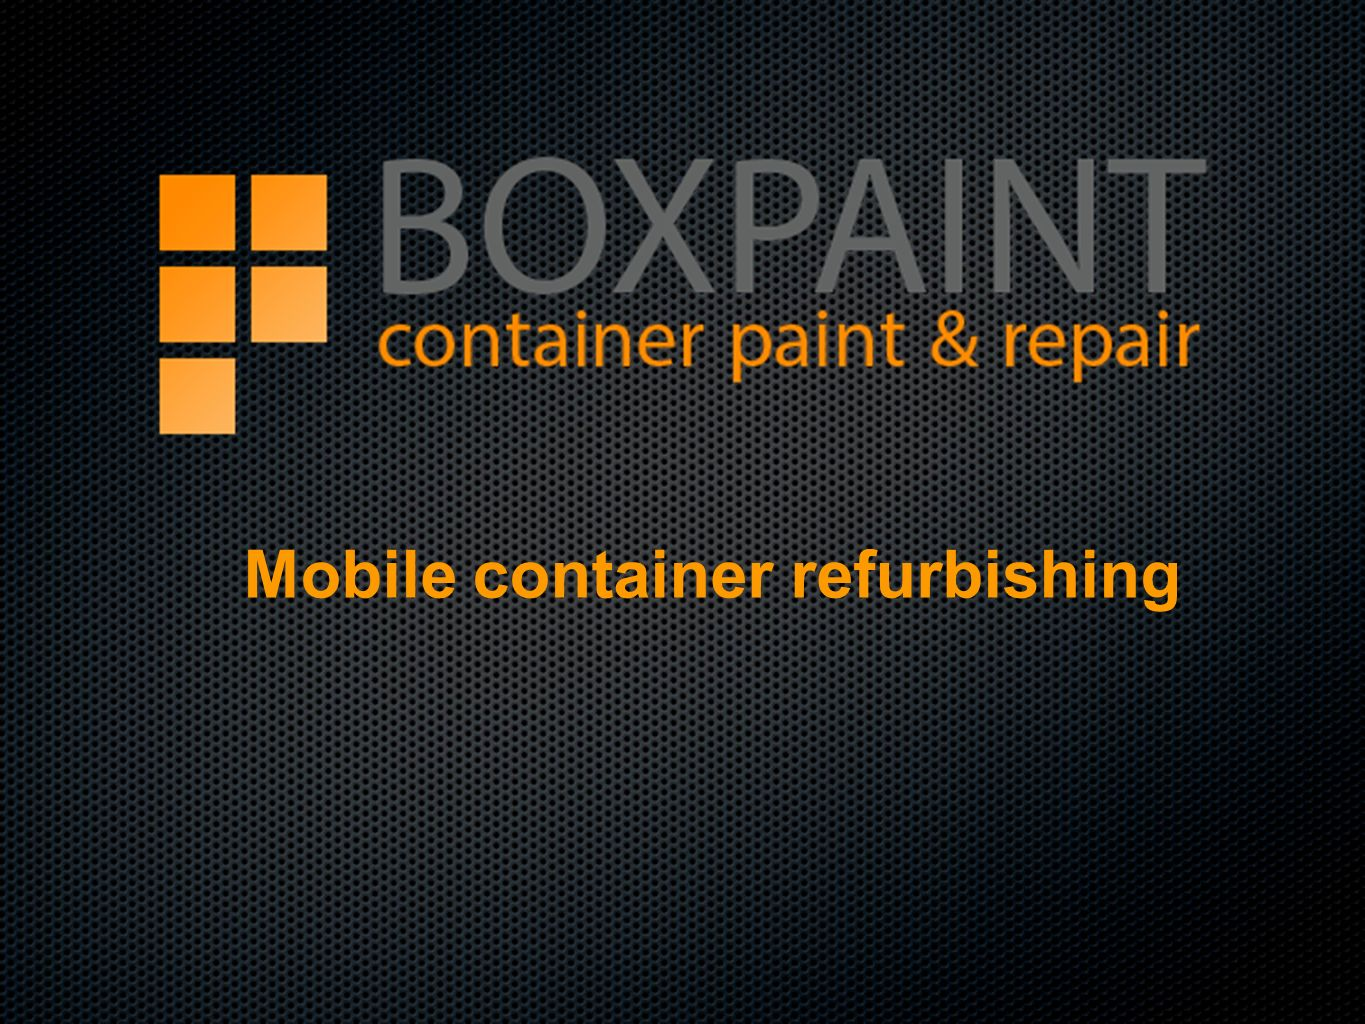 Mobile container refurbishing